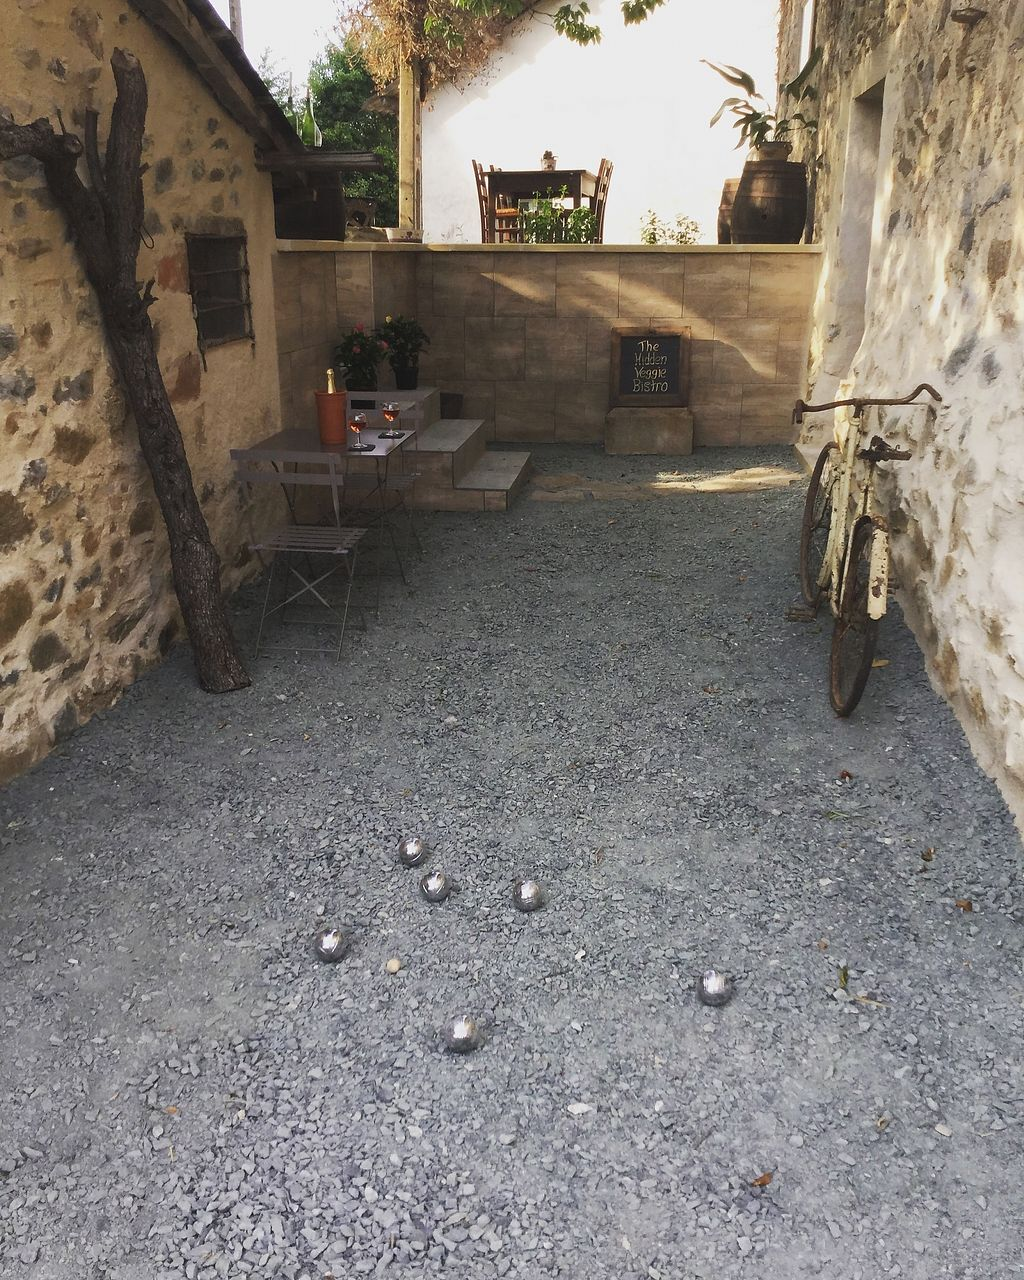 """Photo of The Hidden Veggie Kitchen  by <a href=""""/members/profile/veggiekitchenfr"""">veggiekitchenfr</a> <br/>Play Boules after your meal on our lower level terrace. Great fun :) <br/> July 23, 2017  - <a href='/contact/abuse/image/78159/283806'>Report</a>"""